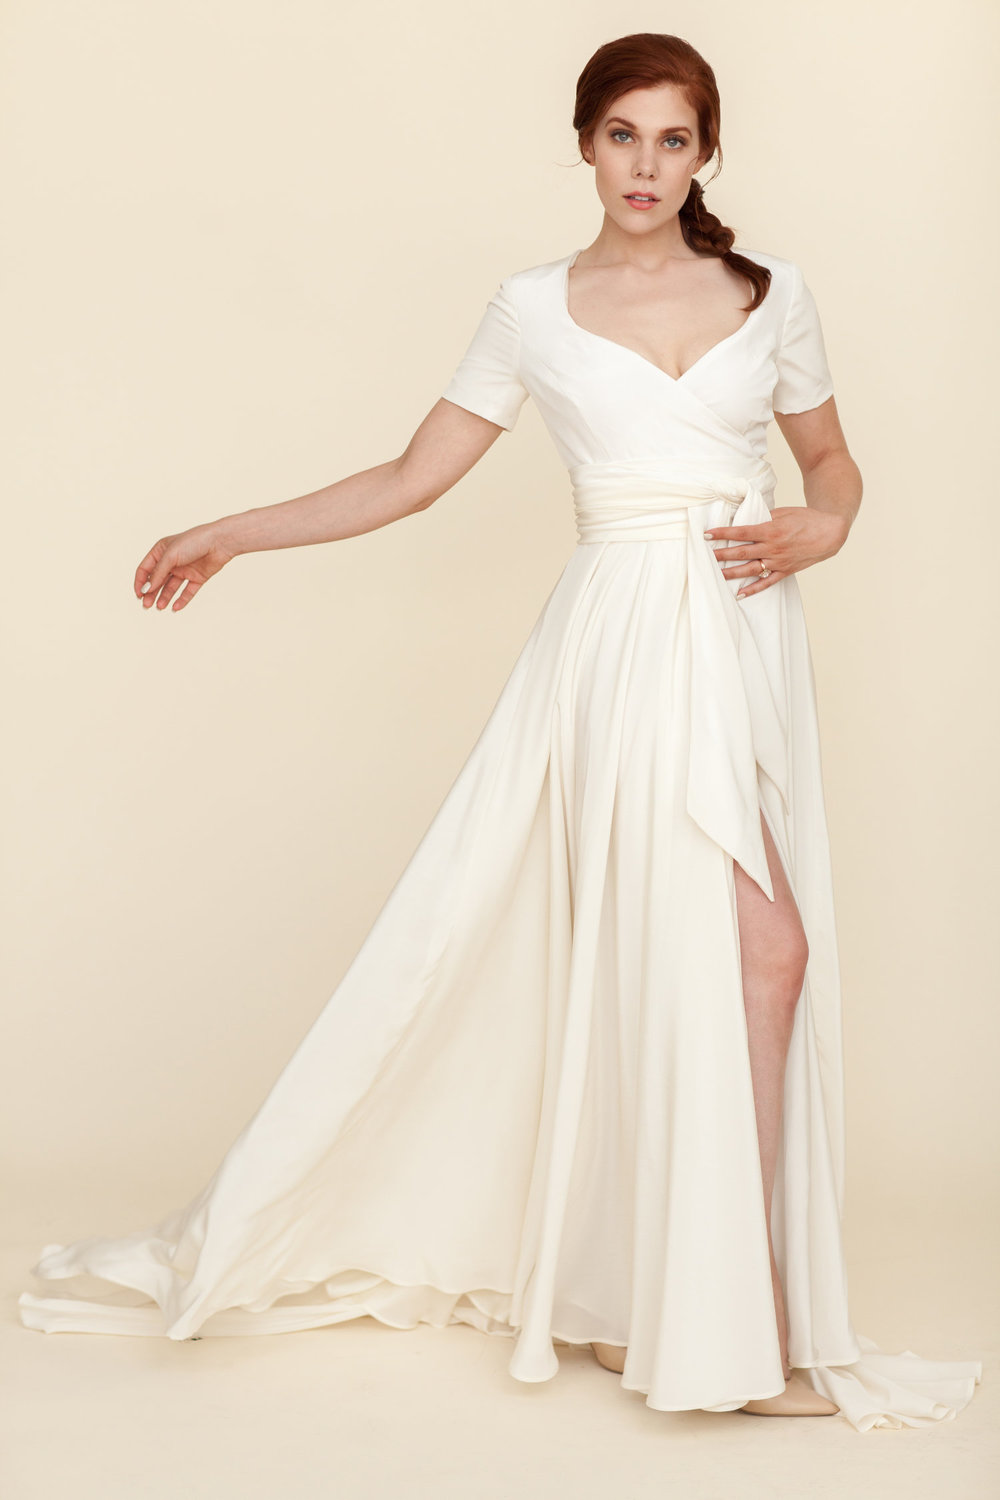 Modehaus Dove | wrap wedding dress with lots of movement | short sleeve wrap dress with dramatic slit